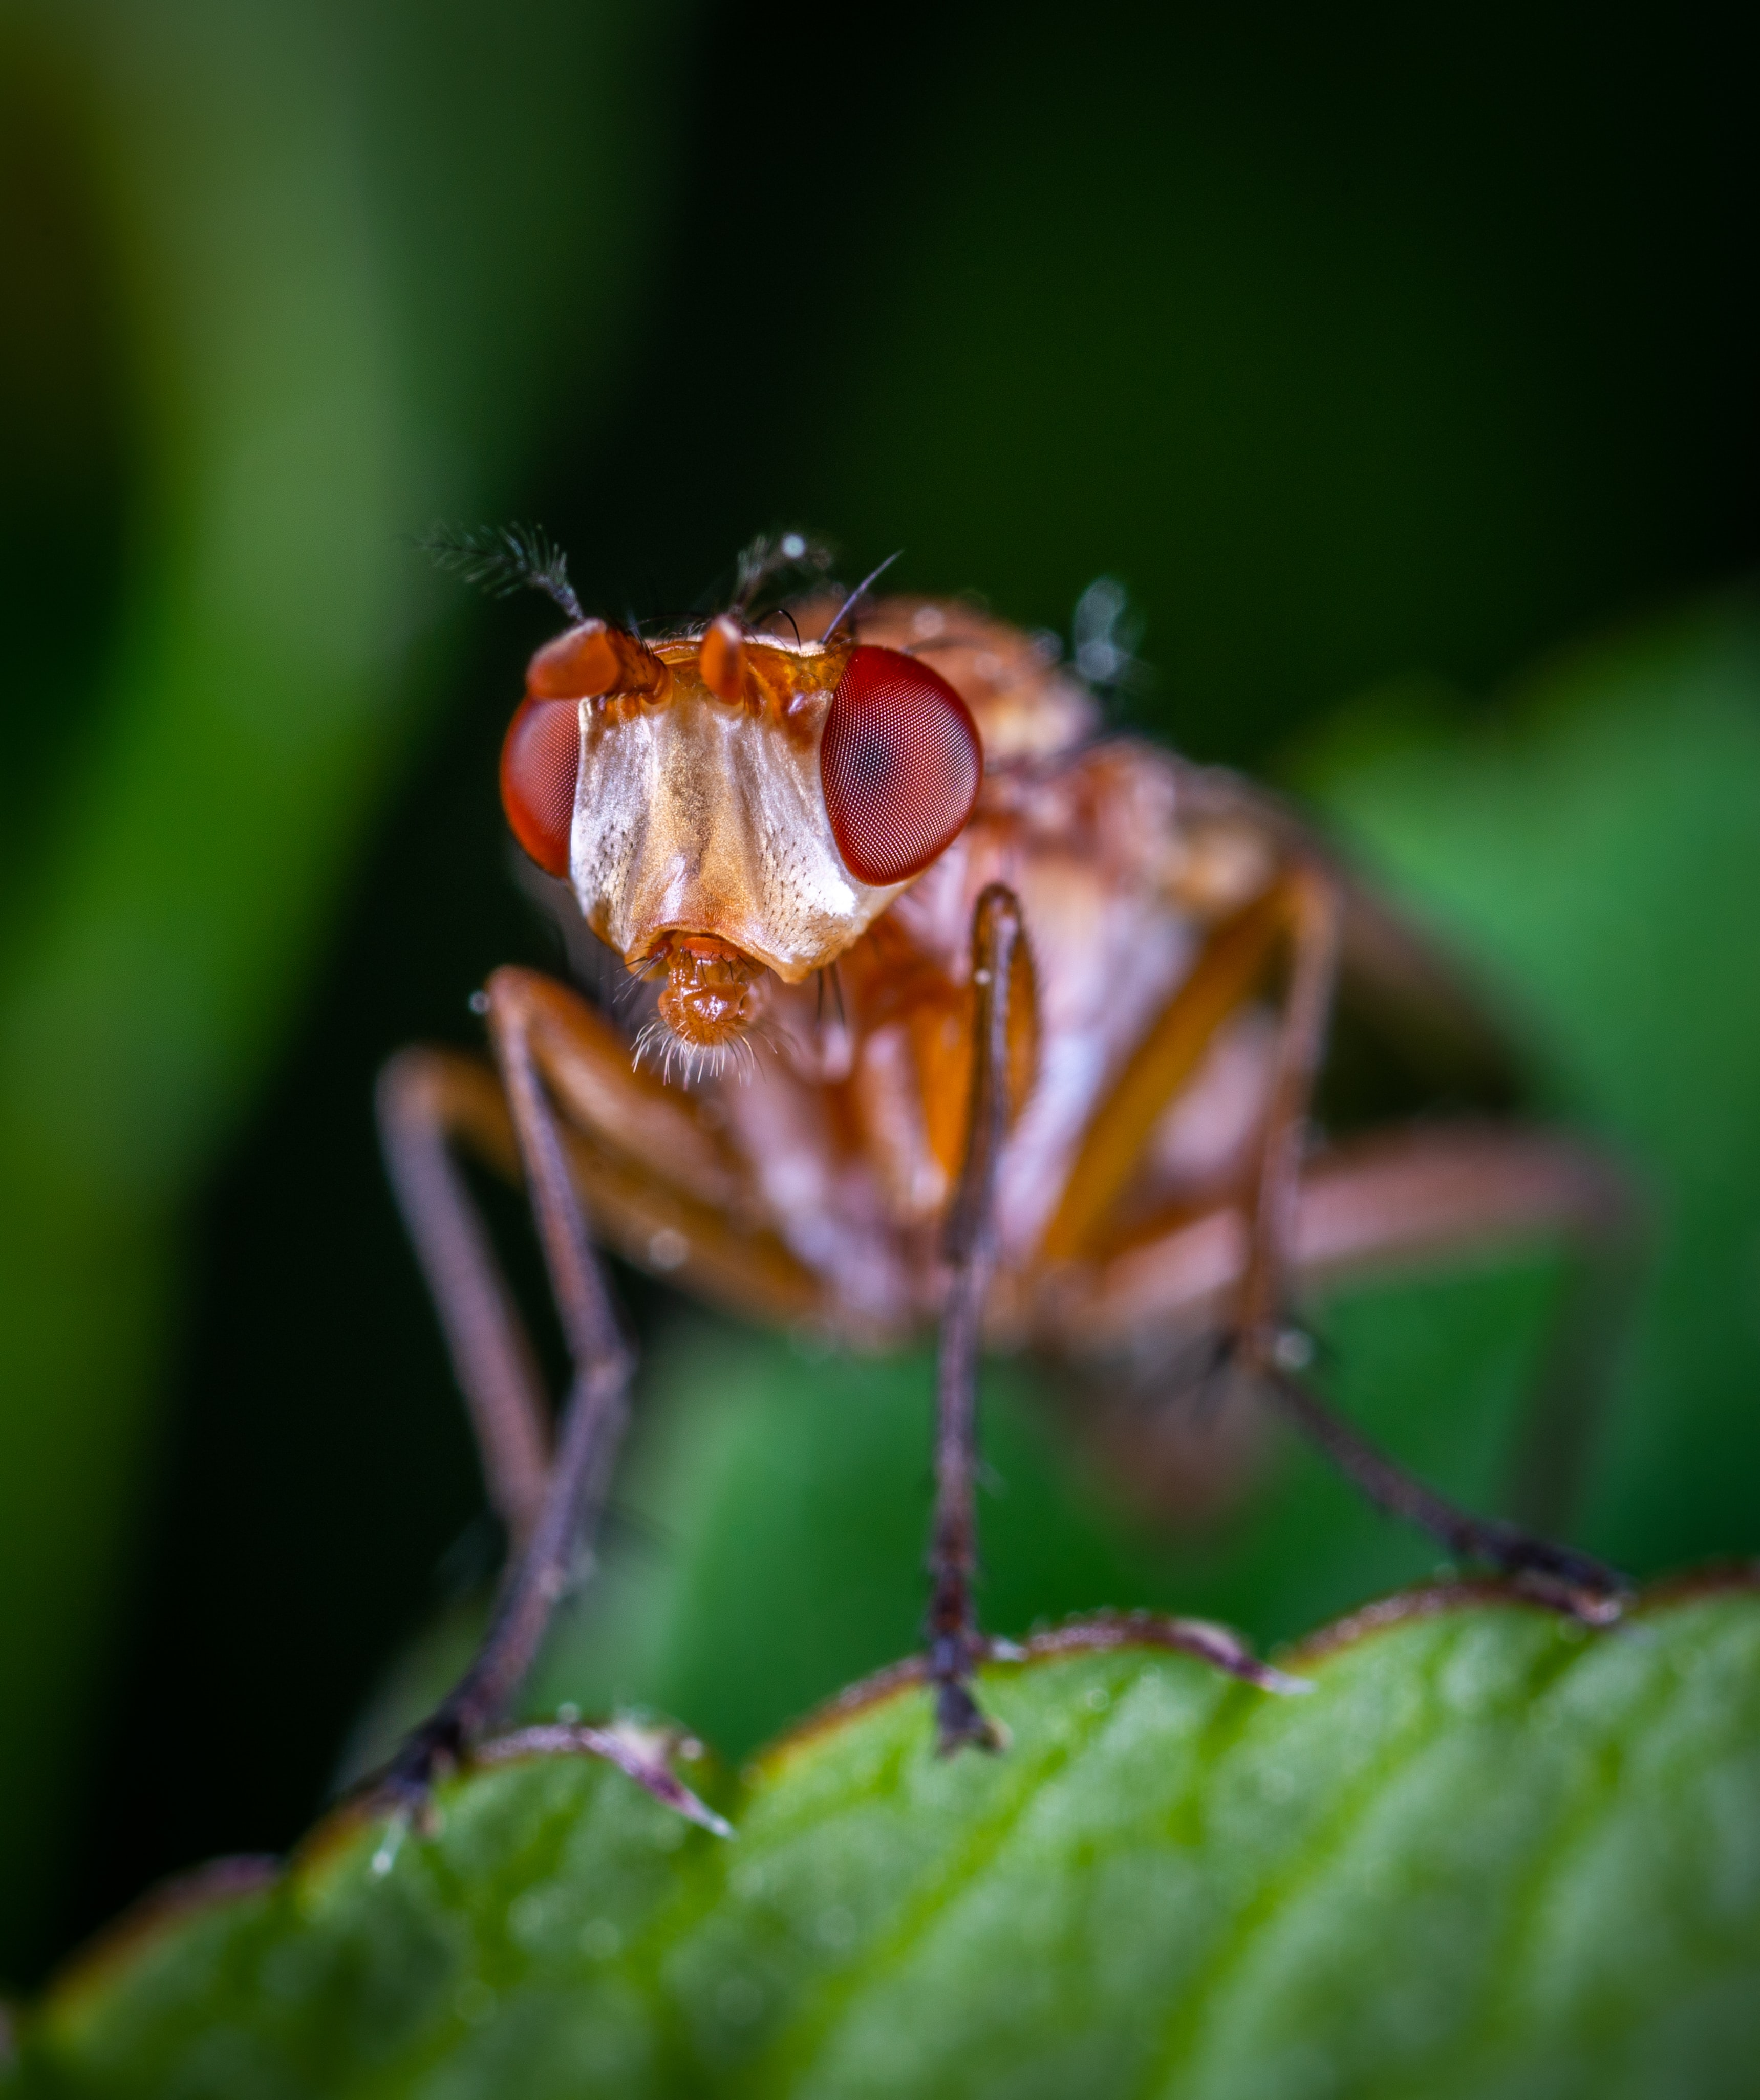 closeup photo of brown insect